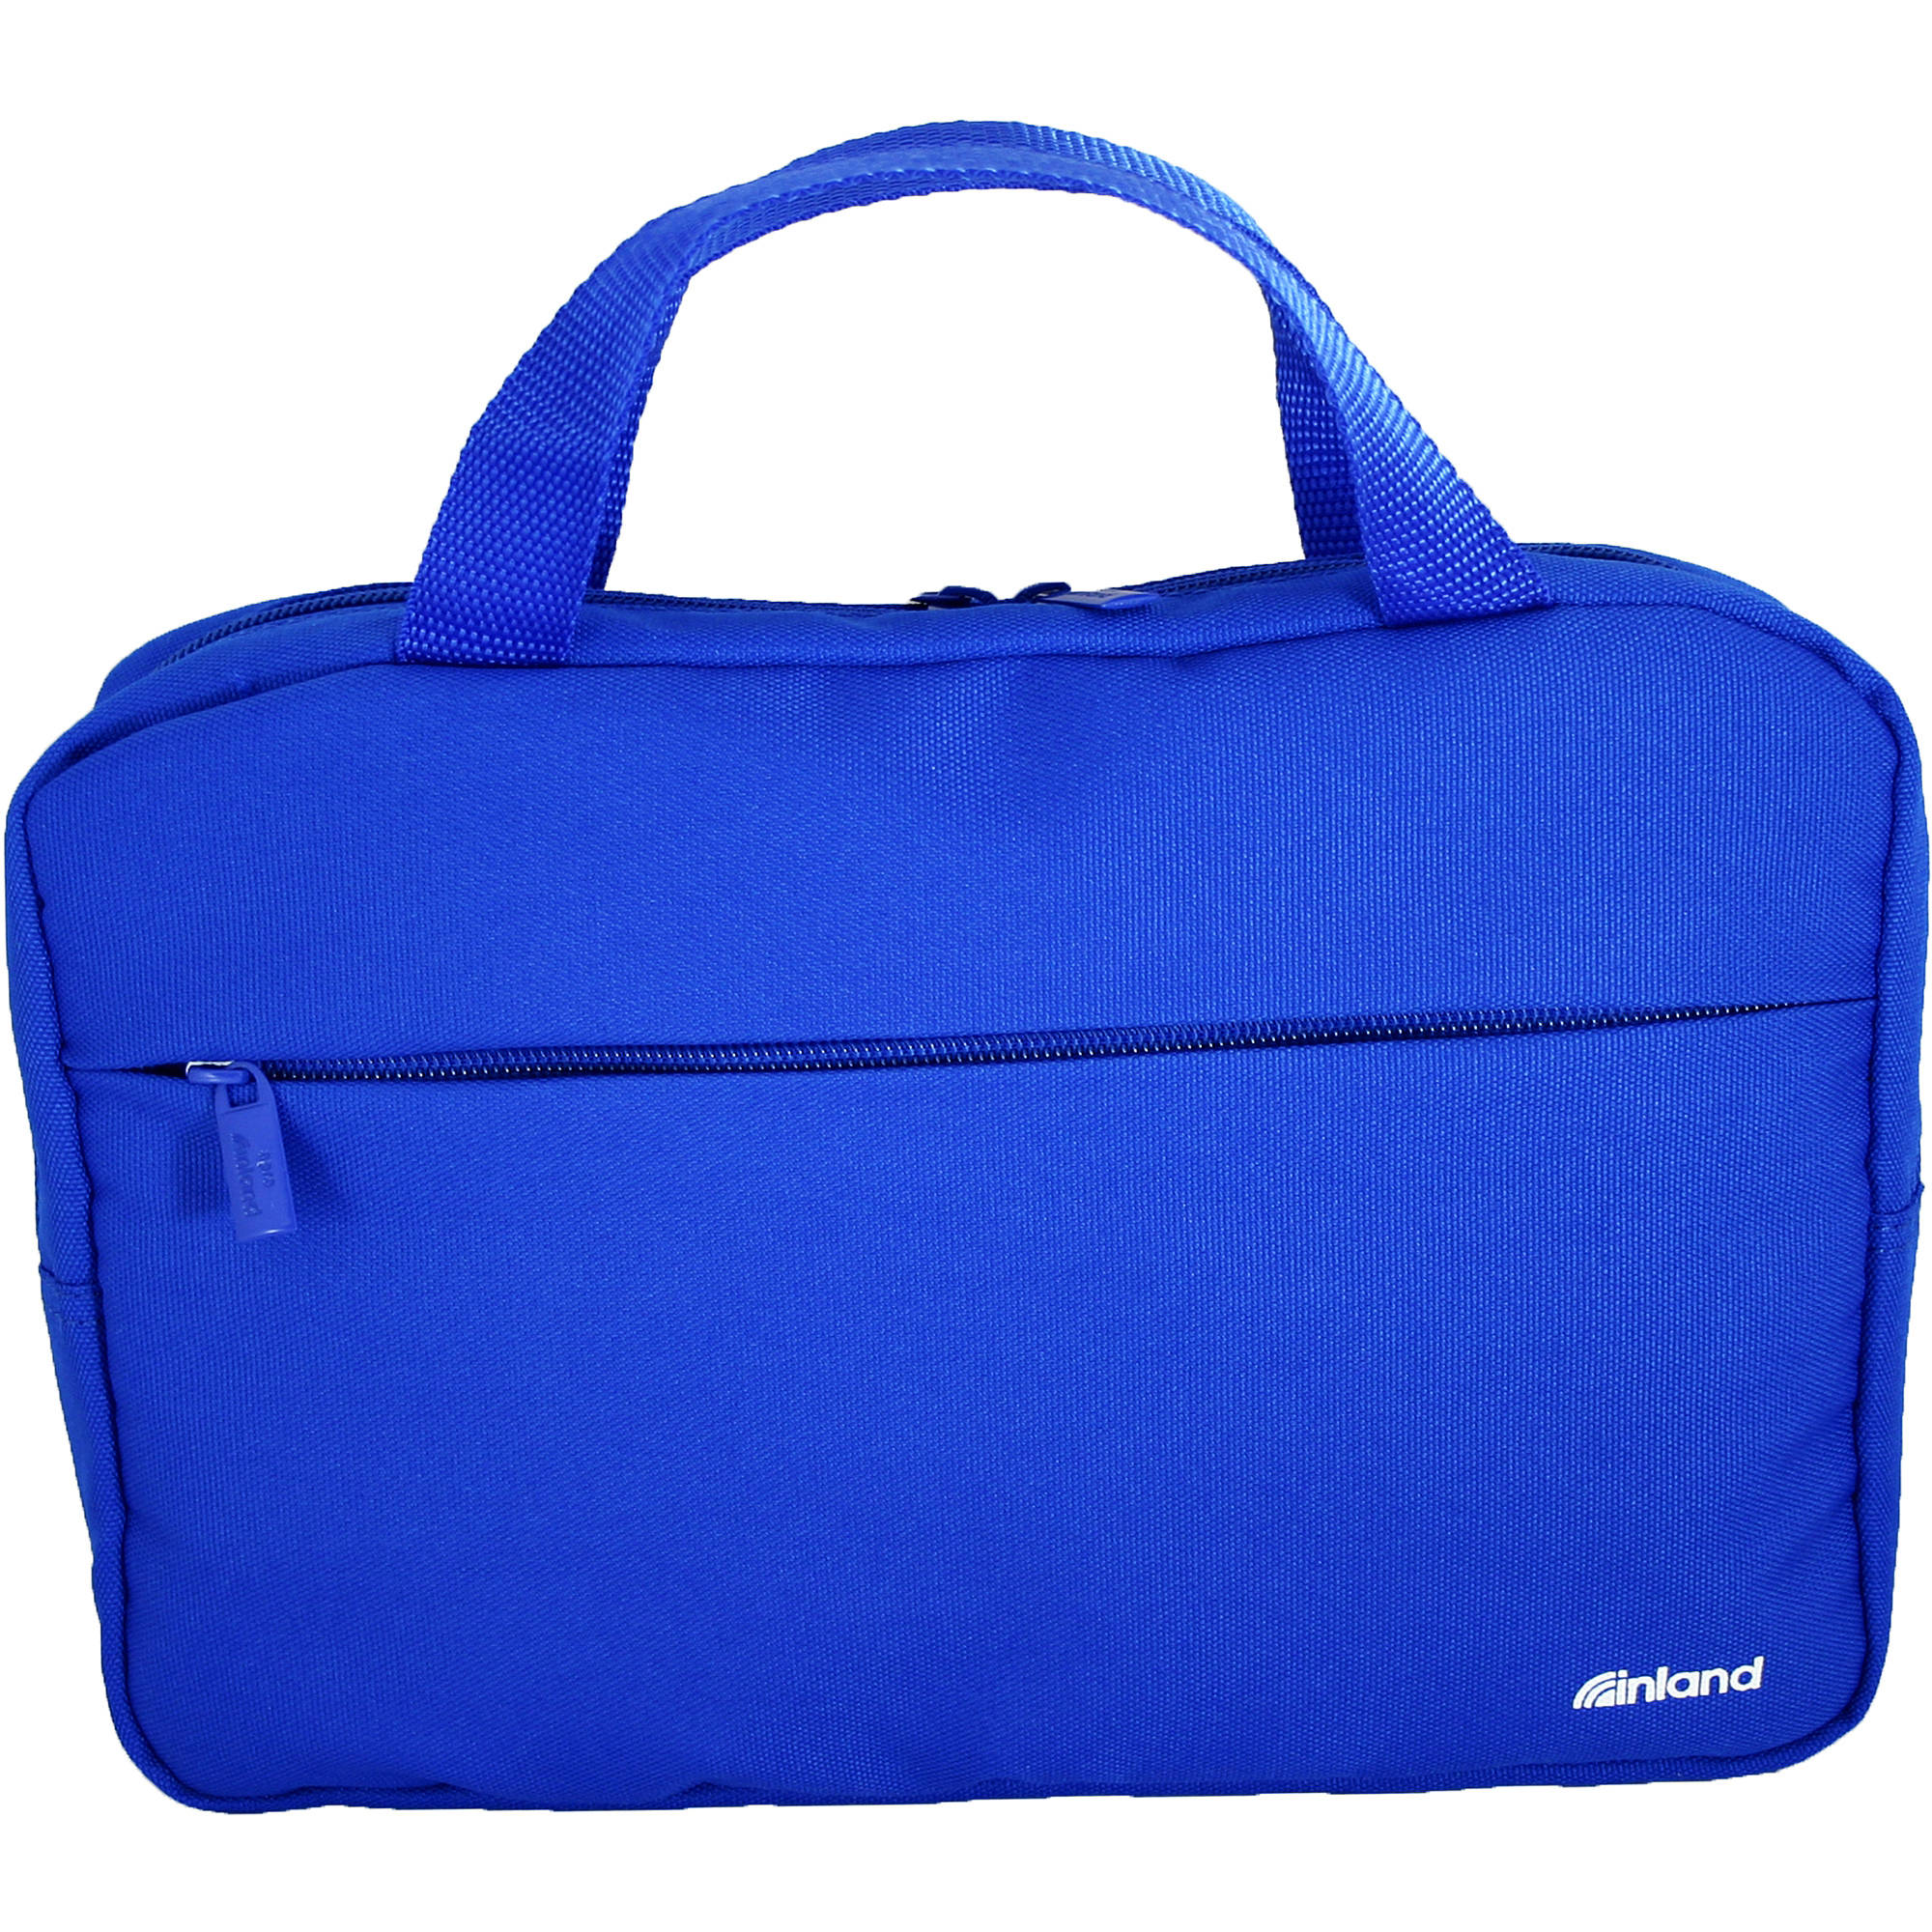 "Inland Pro 17.3"" Notebook Laptop Bag, Blue"